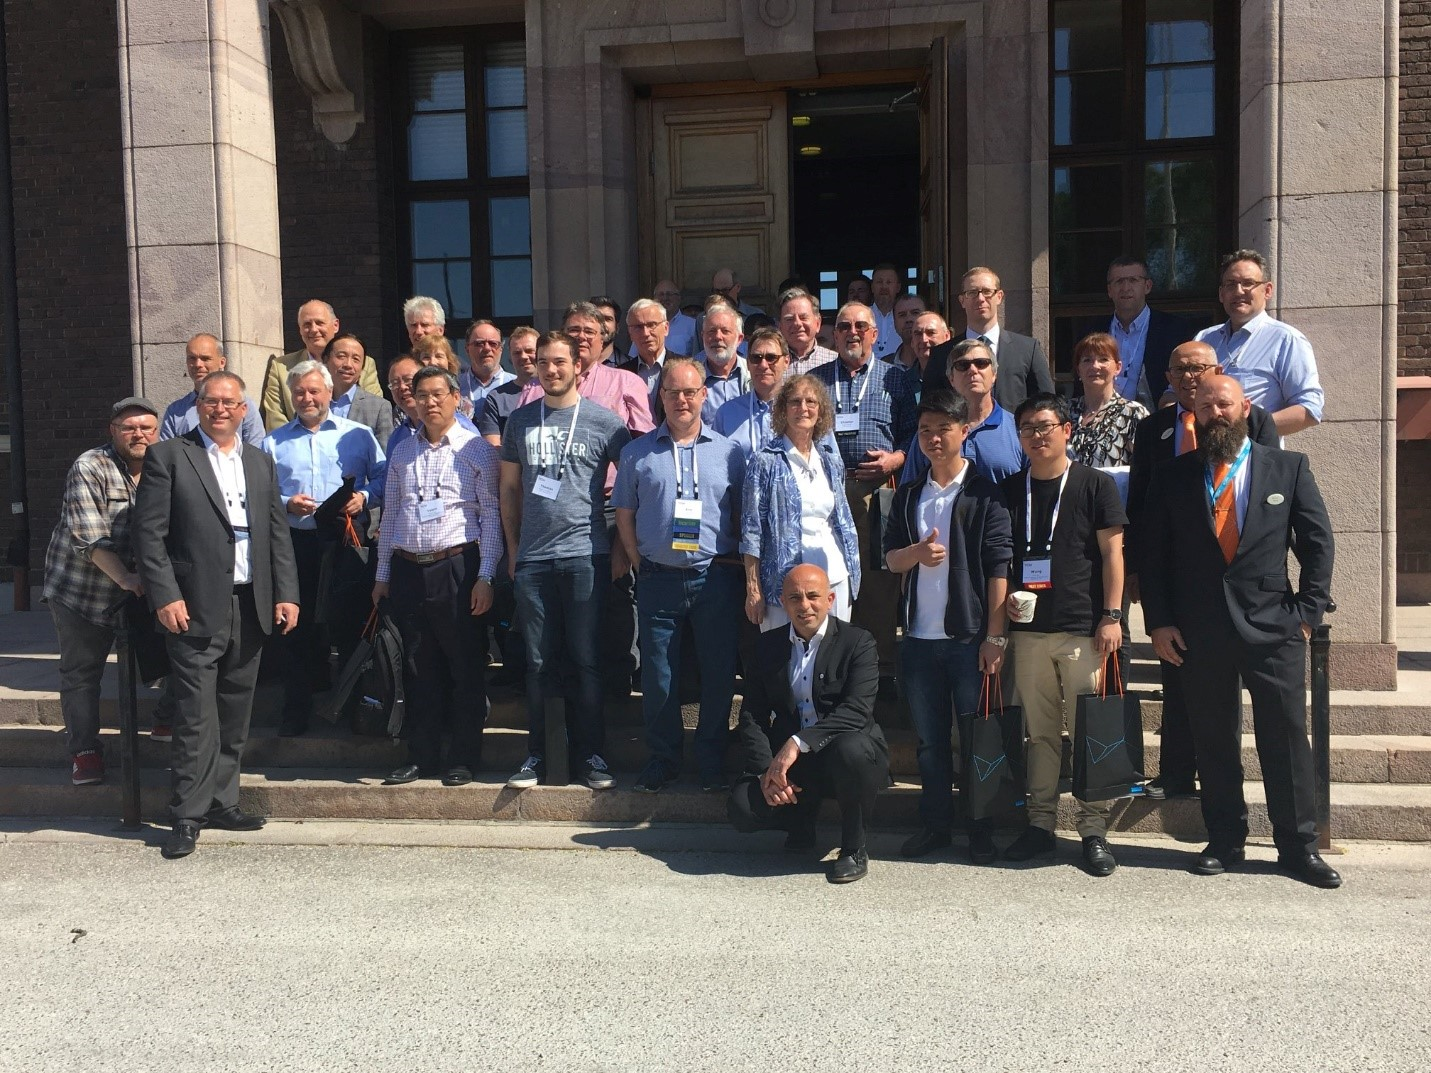 UWE at the PCMI 2018 Spring International Conference